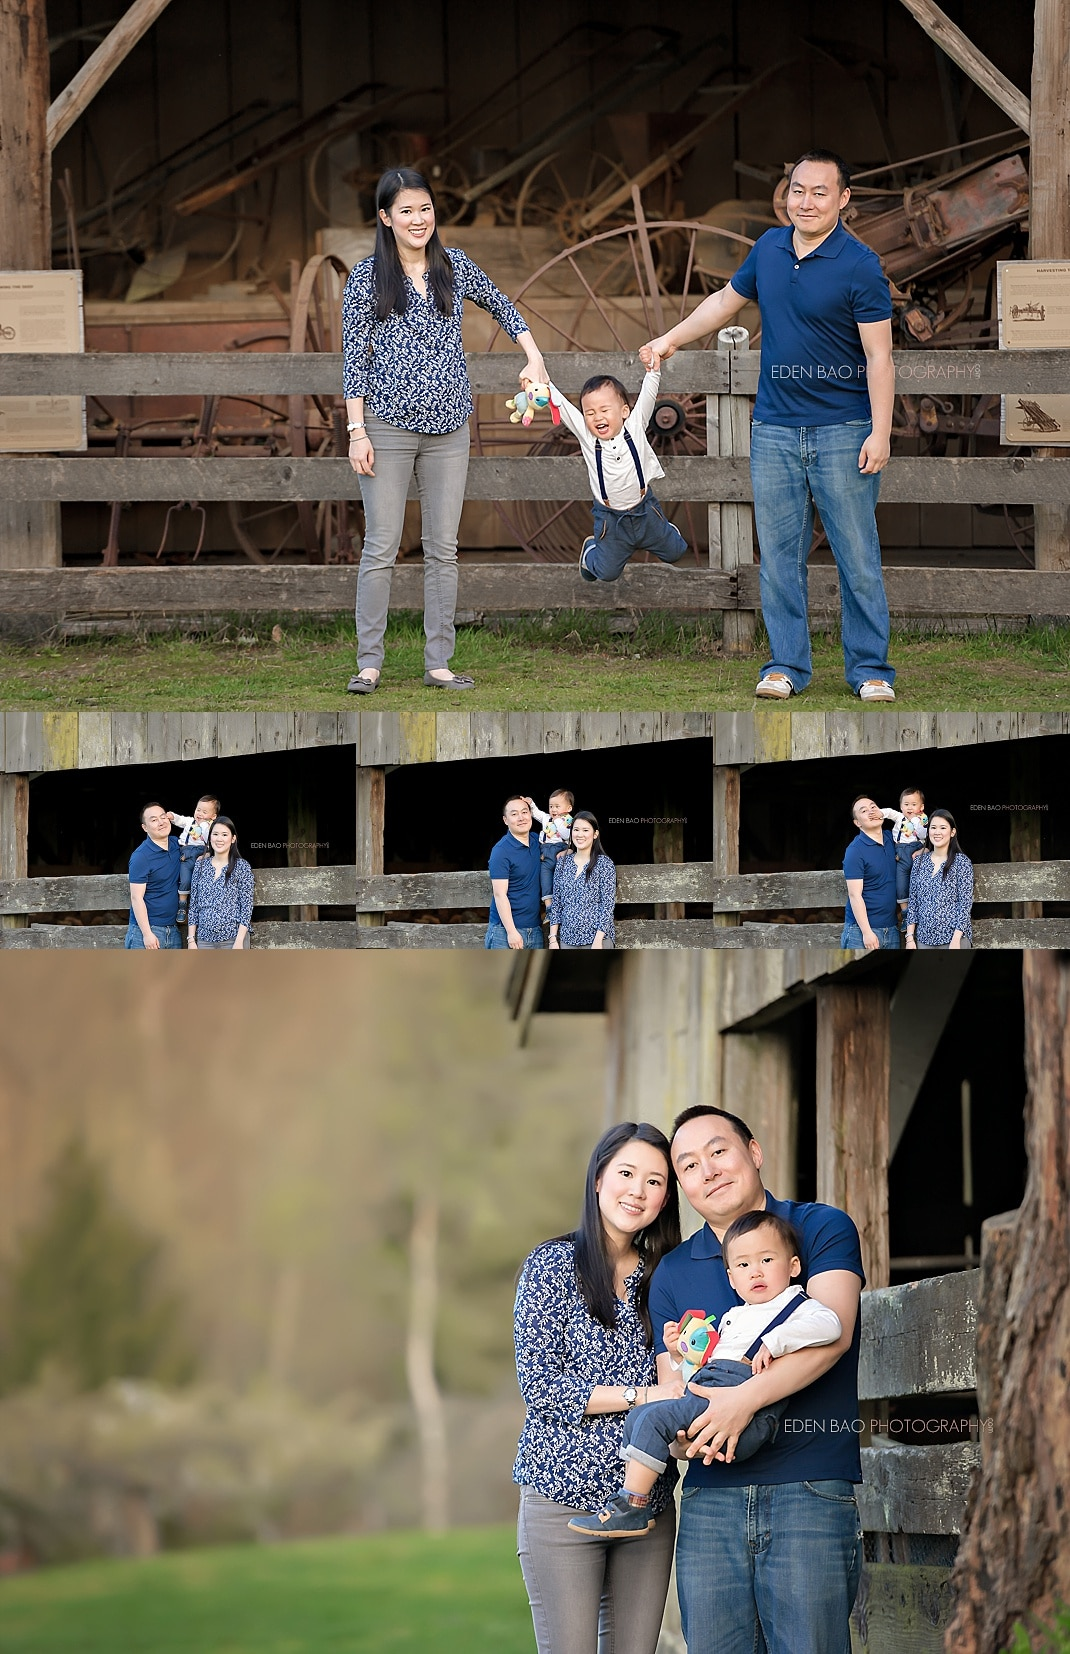 Seattle-family-photographer-family-by-fence